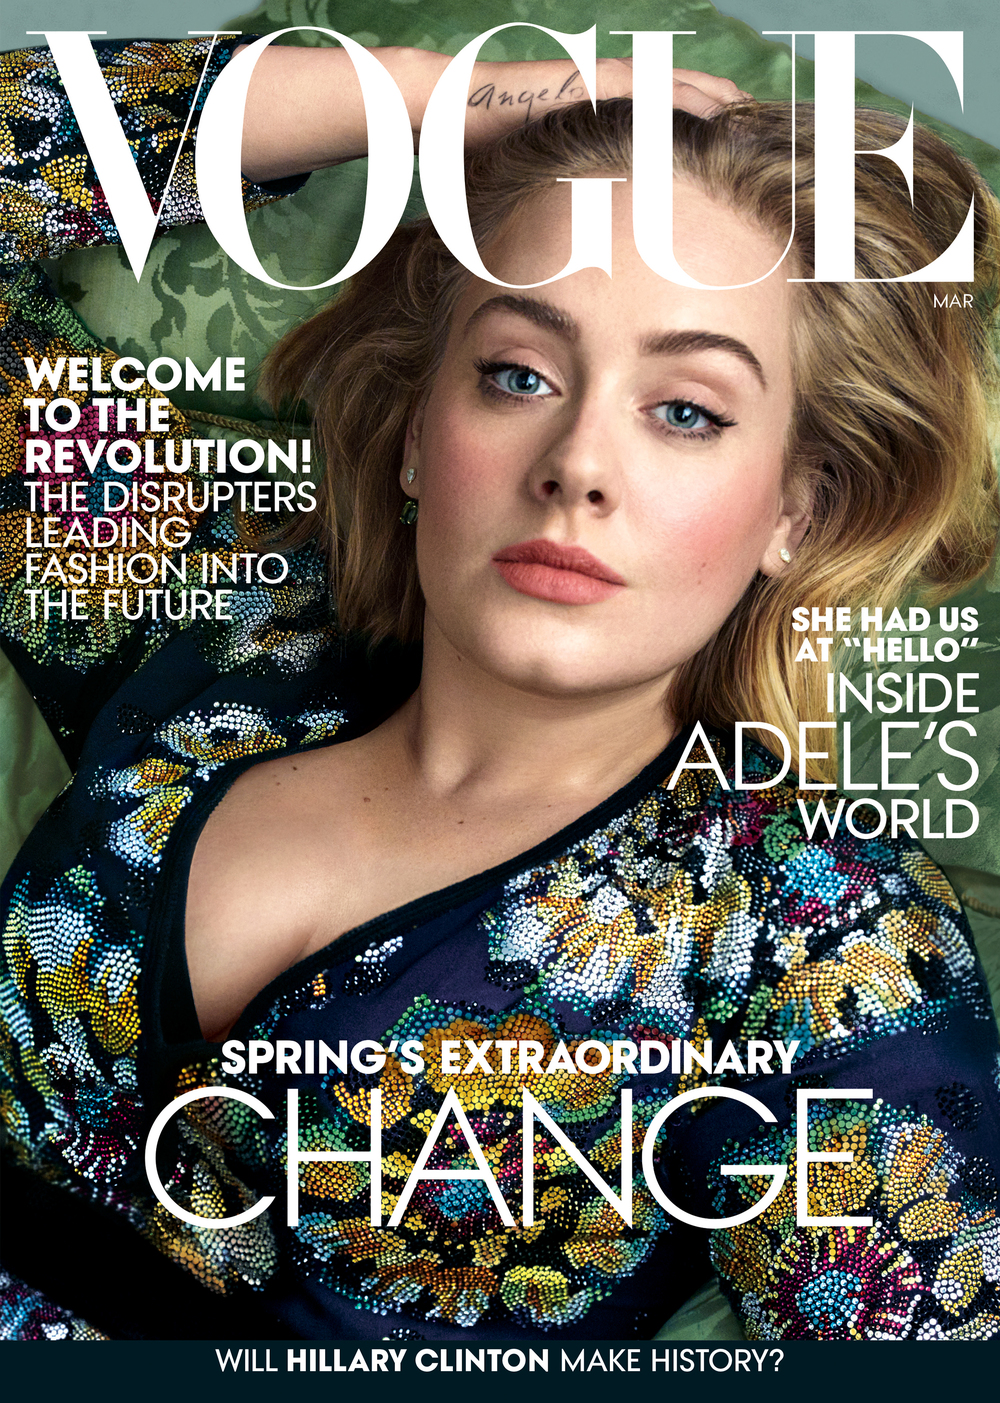 adele-vogue-cover-march-2016.jpg